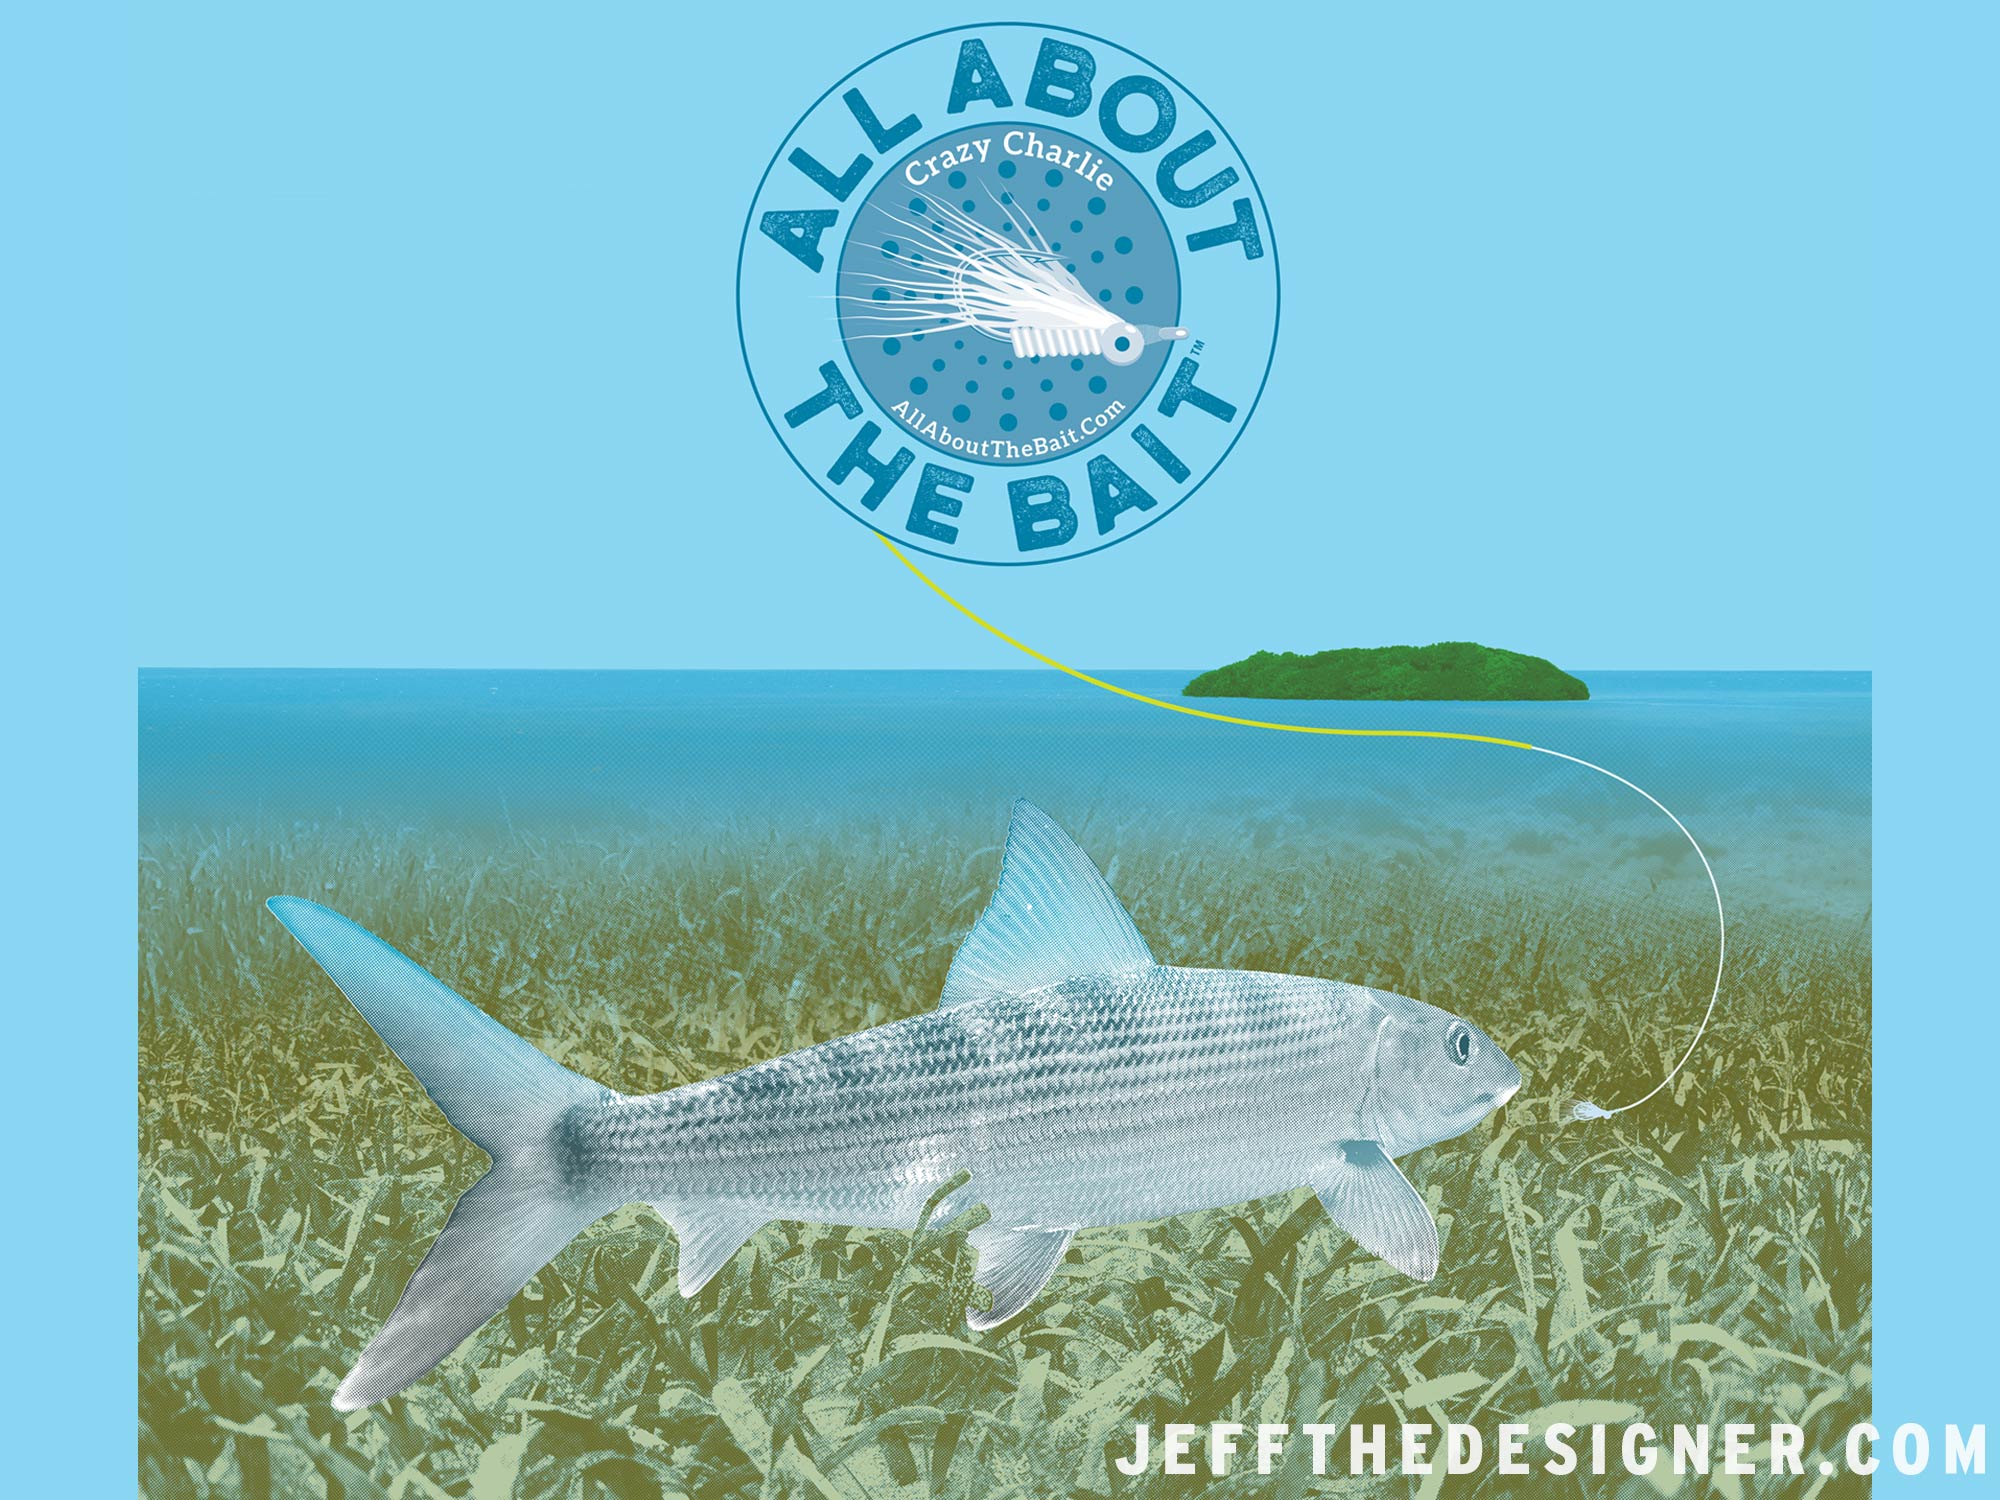 Detail of Shirt Artwork - Bonefish Chasing a Crazy Charlie Fly on the Florida Keys Flats